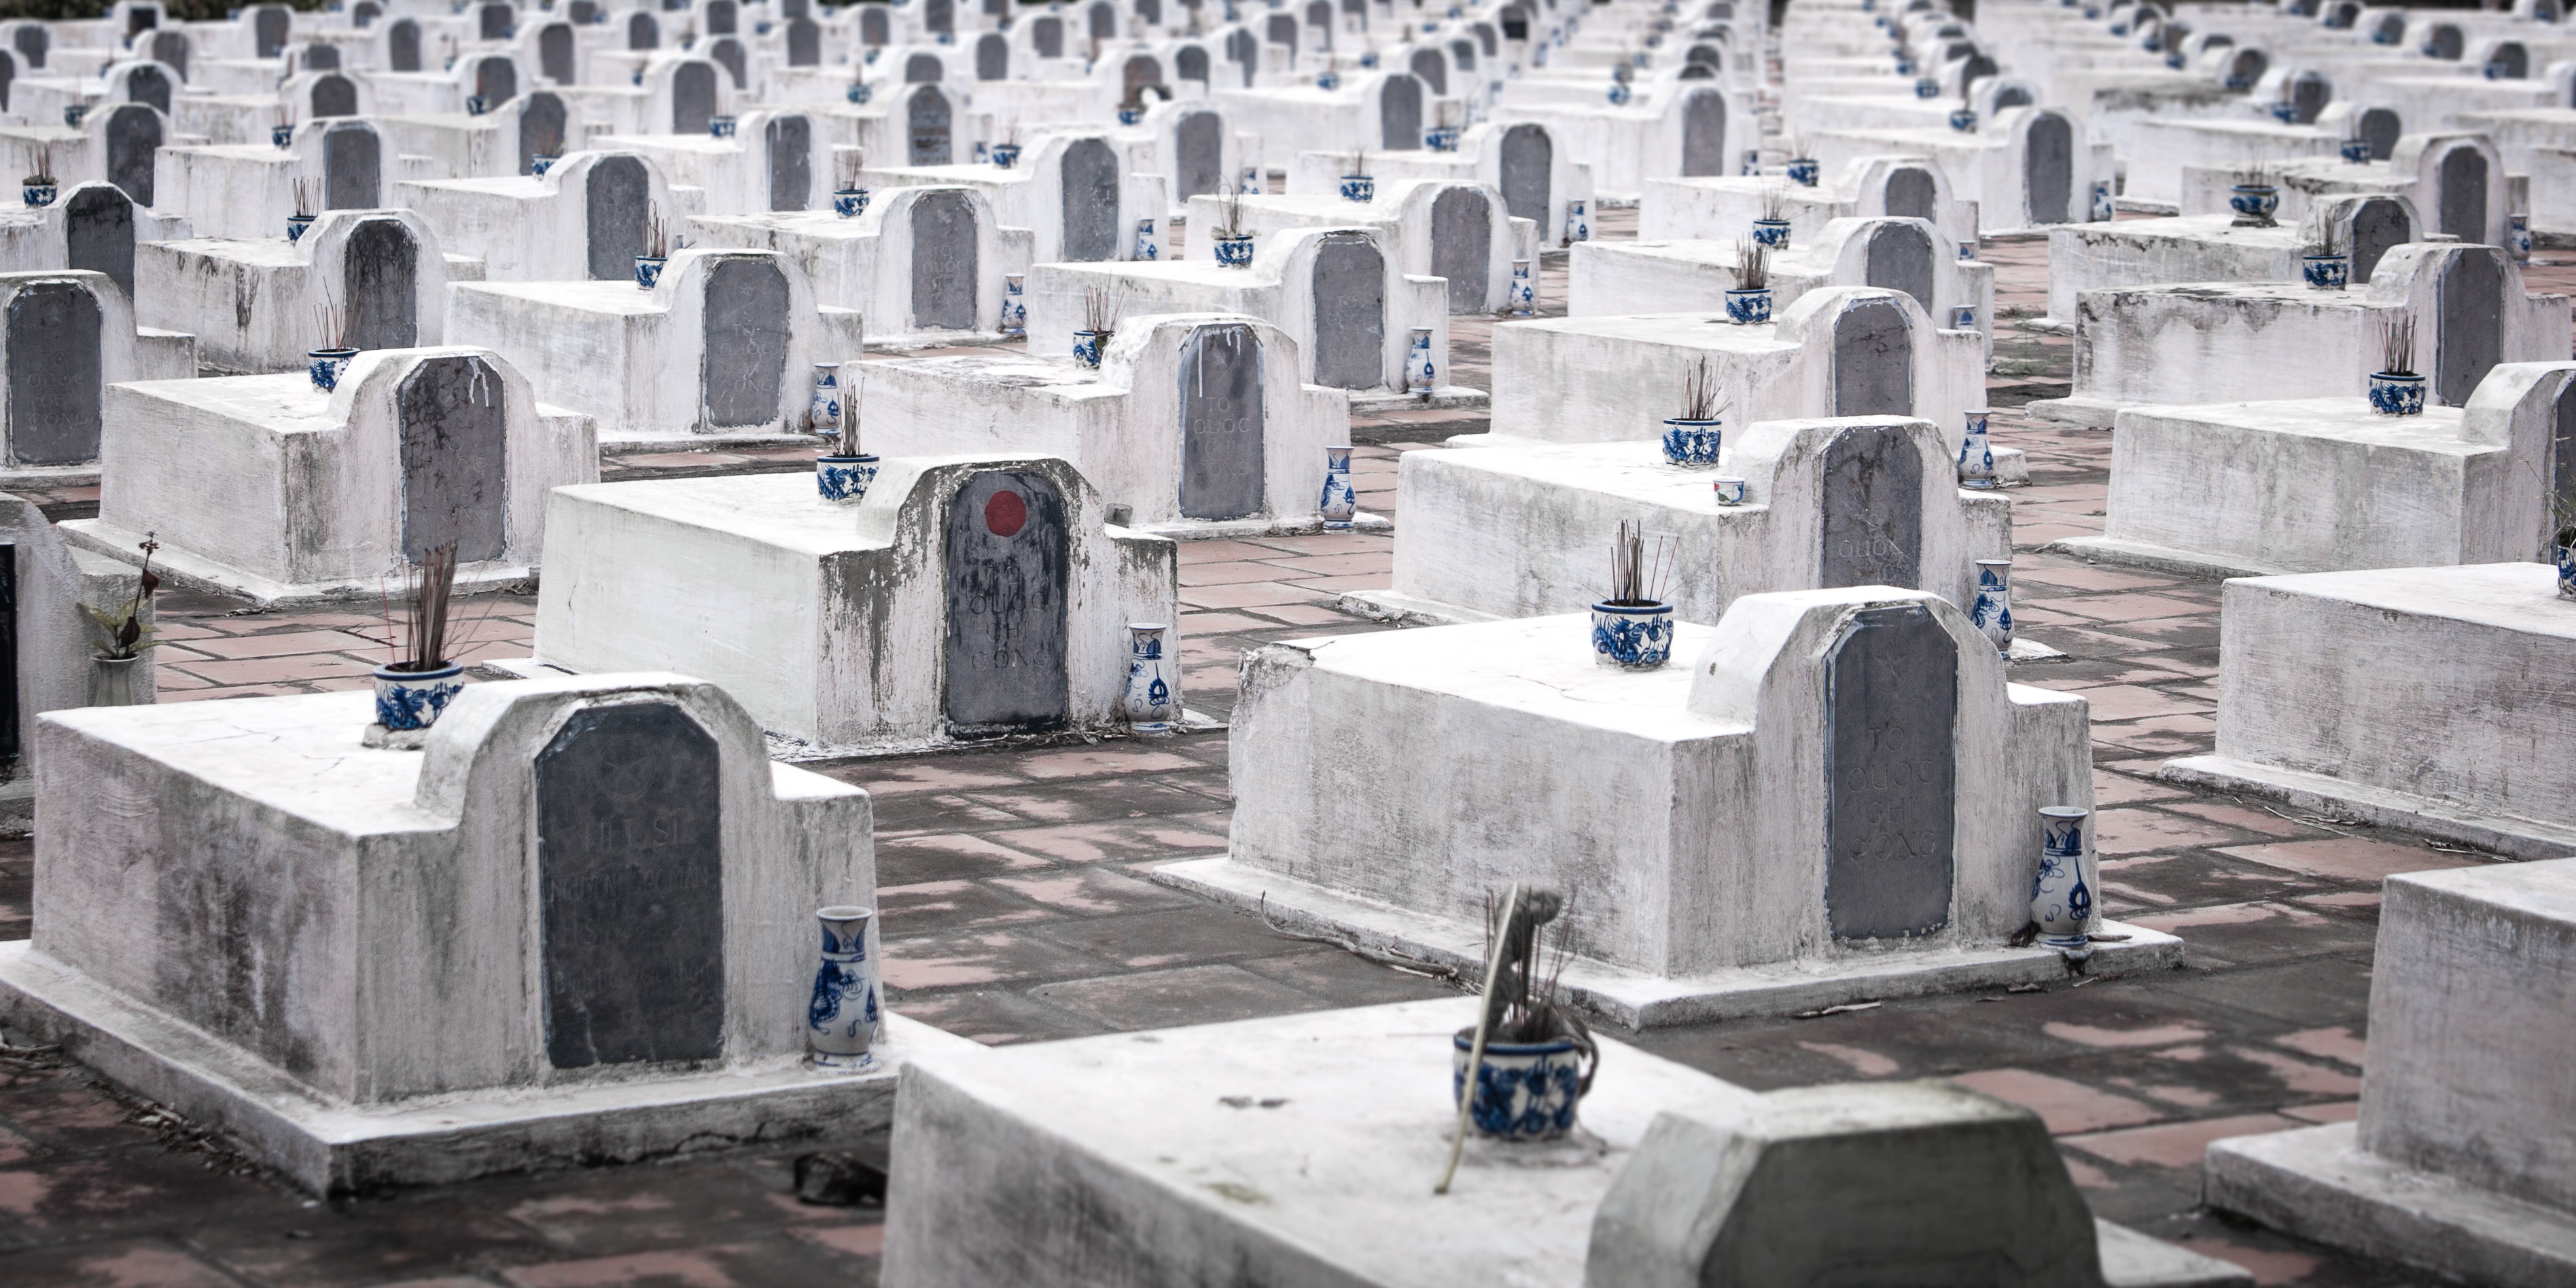 War graveyard in Vietnam. You can find many war graveyards from the North versus the South Vietnam War in Vietnam.   Photo by freistilchaot / iStock / Getty Images Plus; St. George News